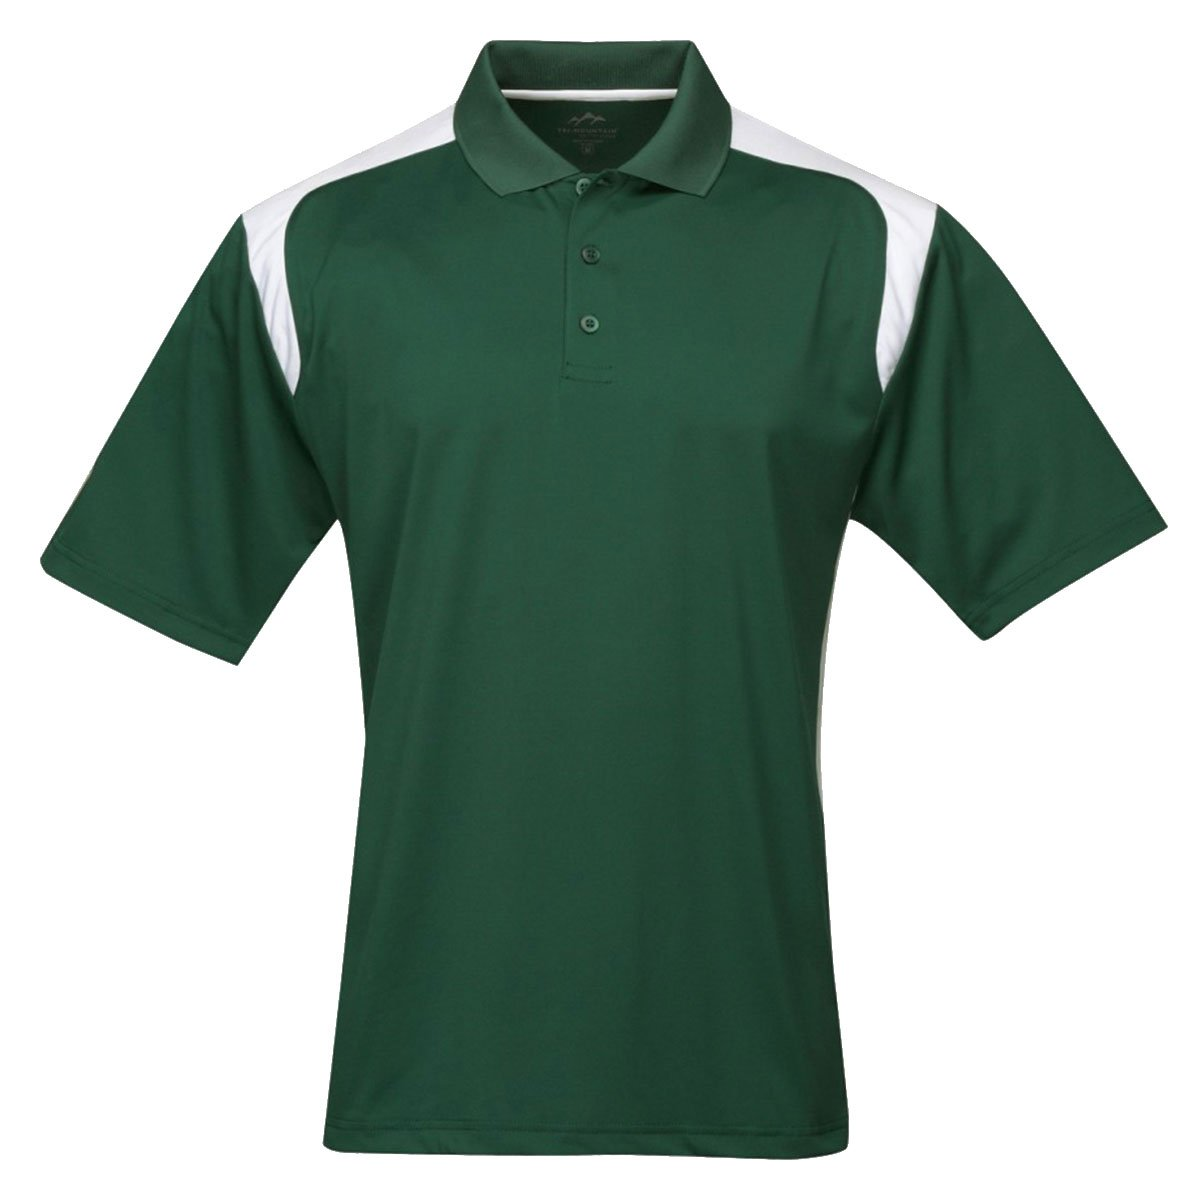 Tri-mountain Mens 100% Polyester UC Knit Polo Shirt. 145TM - FOREST GREEN / WHITE_3XL